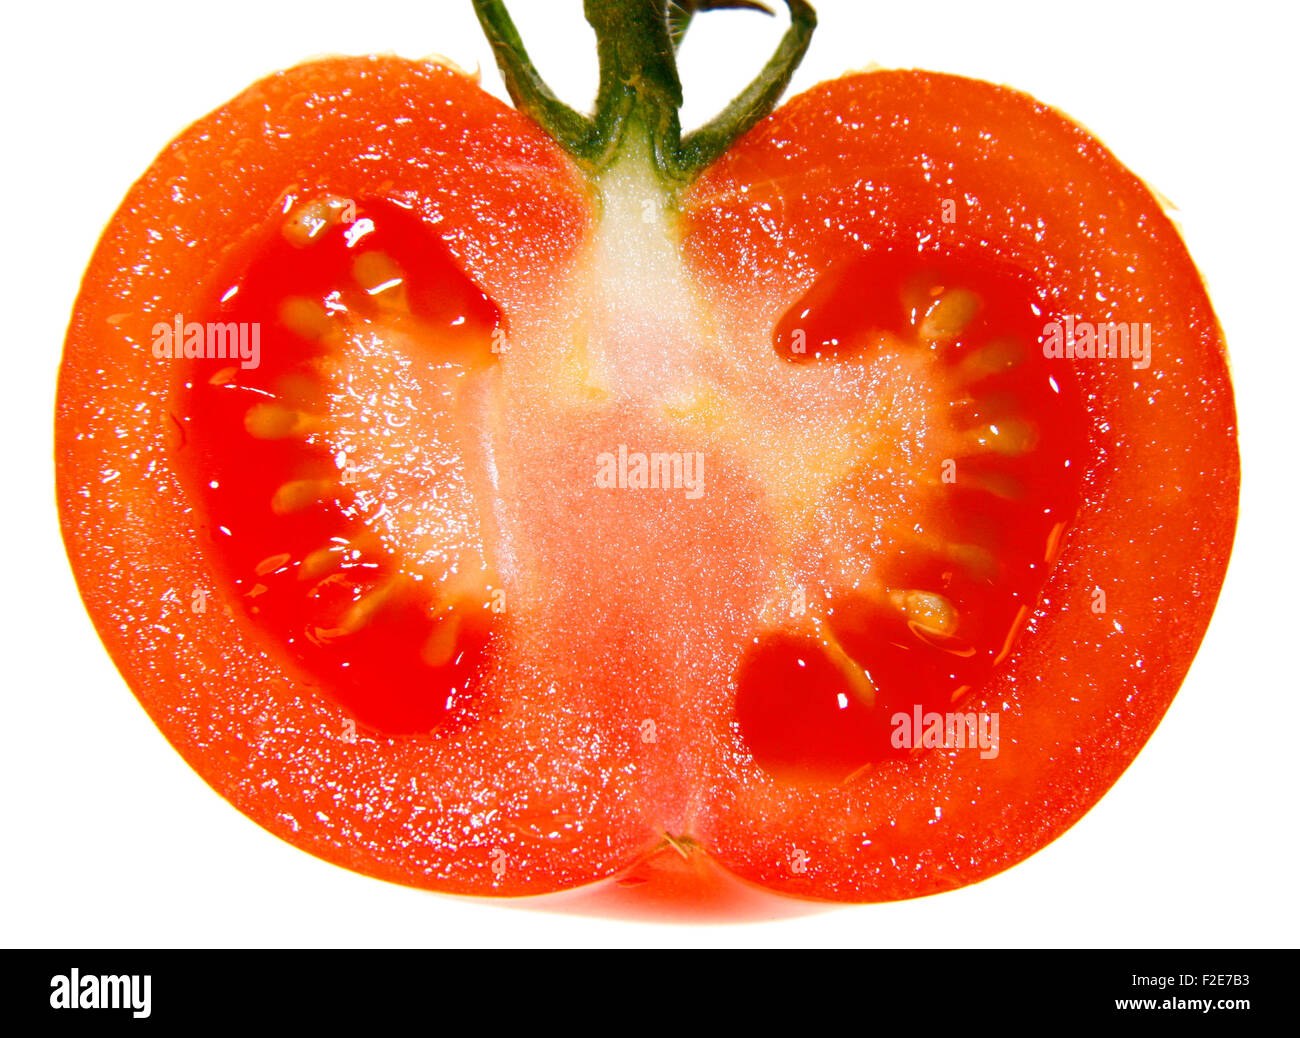 Tomaten - Symbolbild Nahrungsmittel. Stock Photo